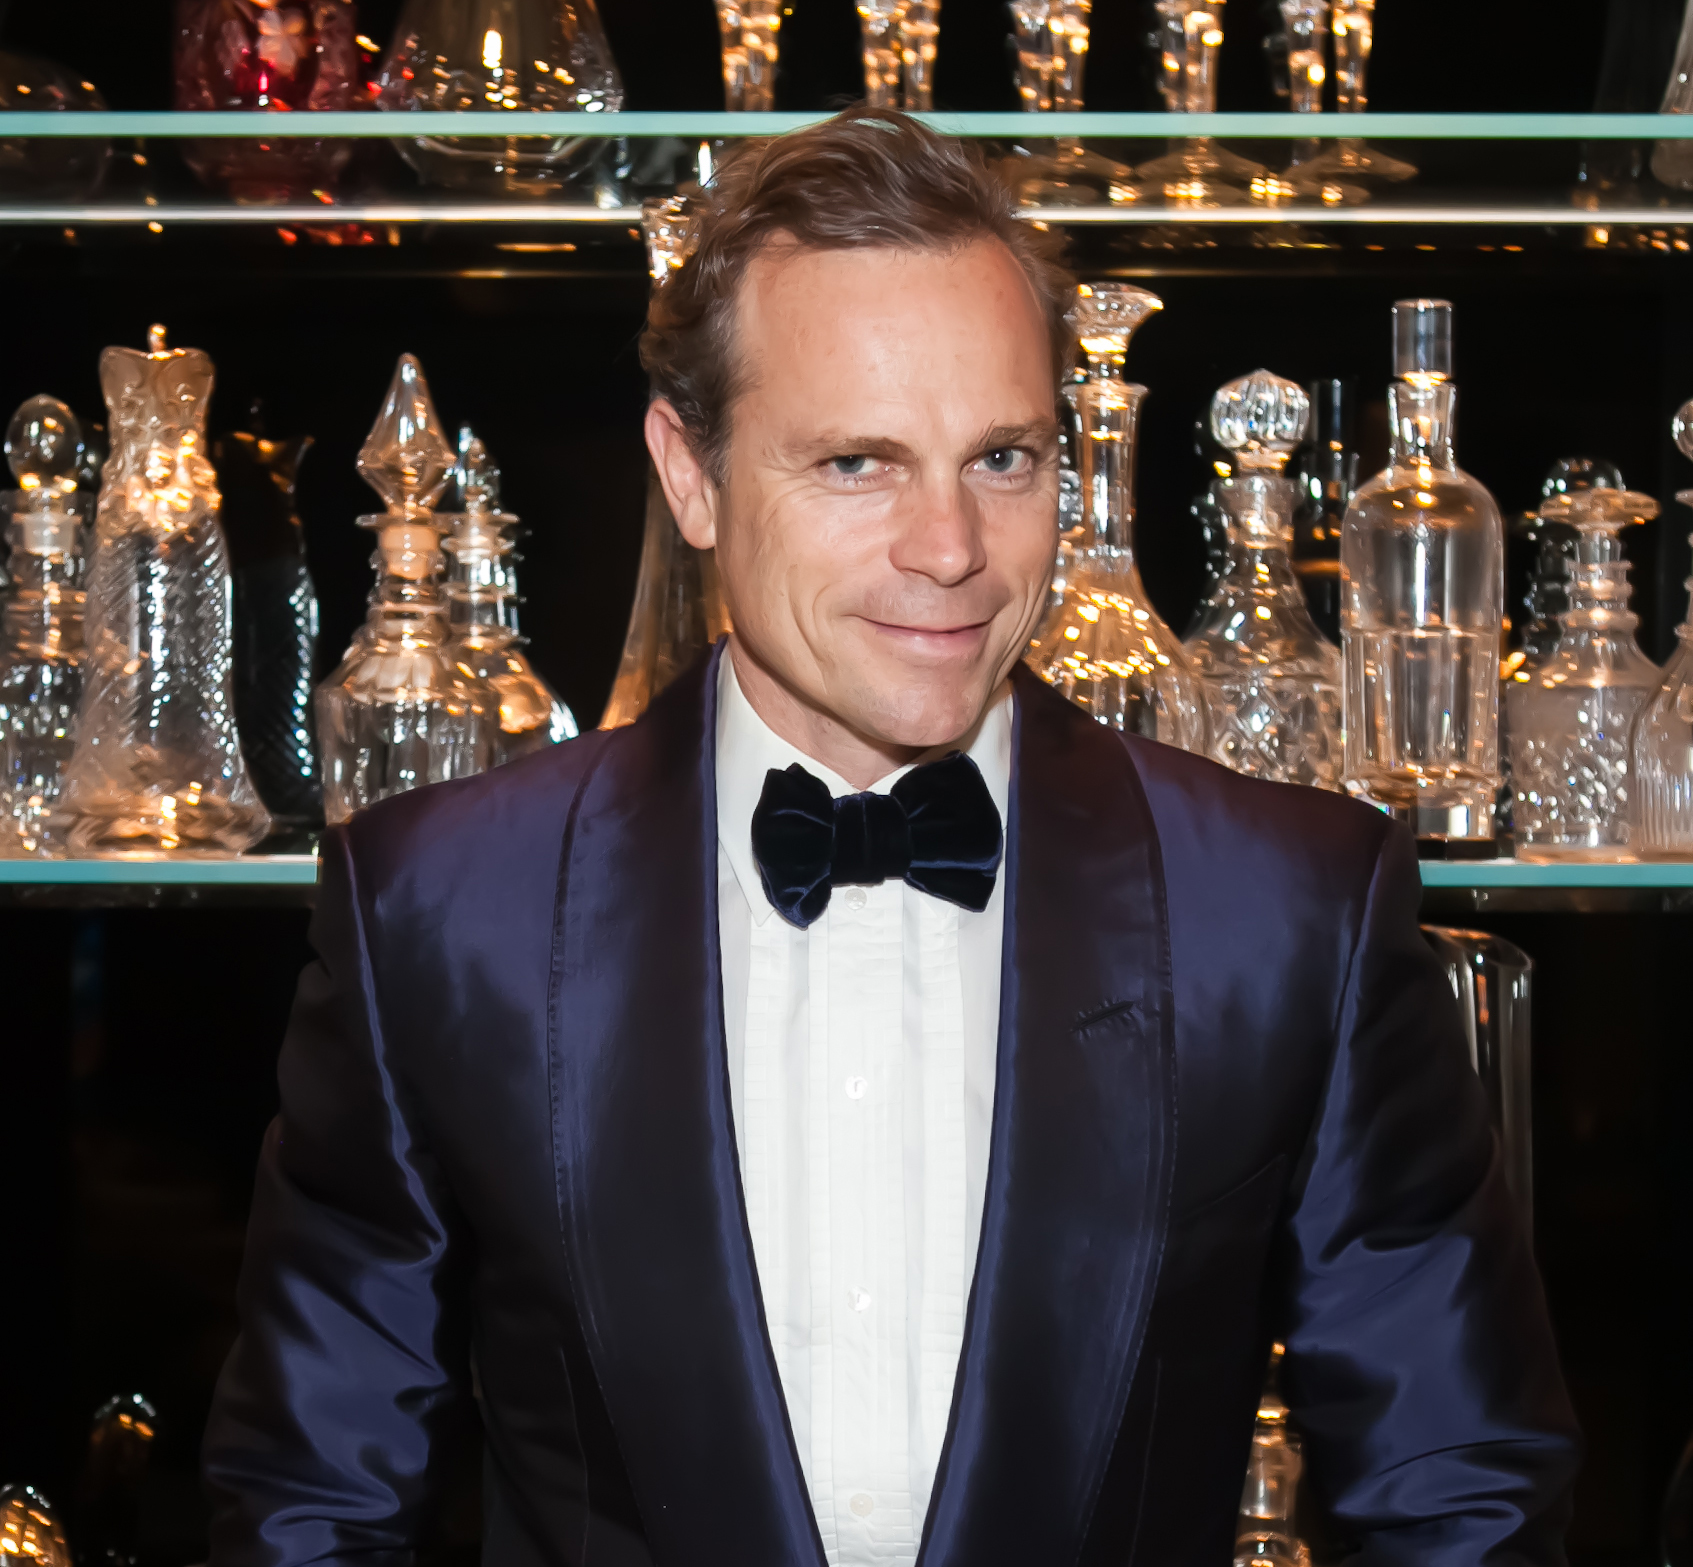 Boisset Collection Ramps Up Innovation Efforts With New Releases